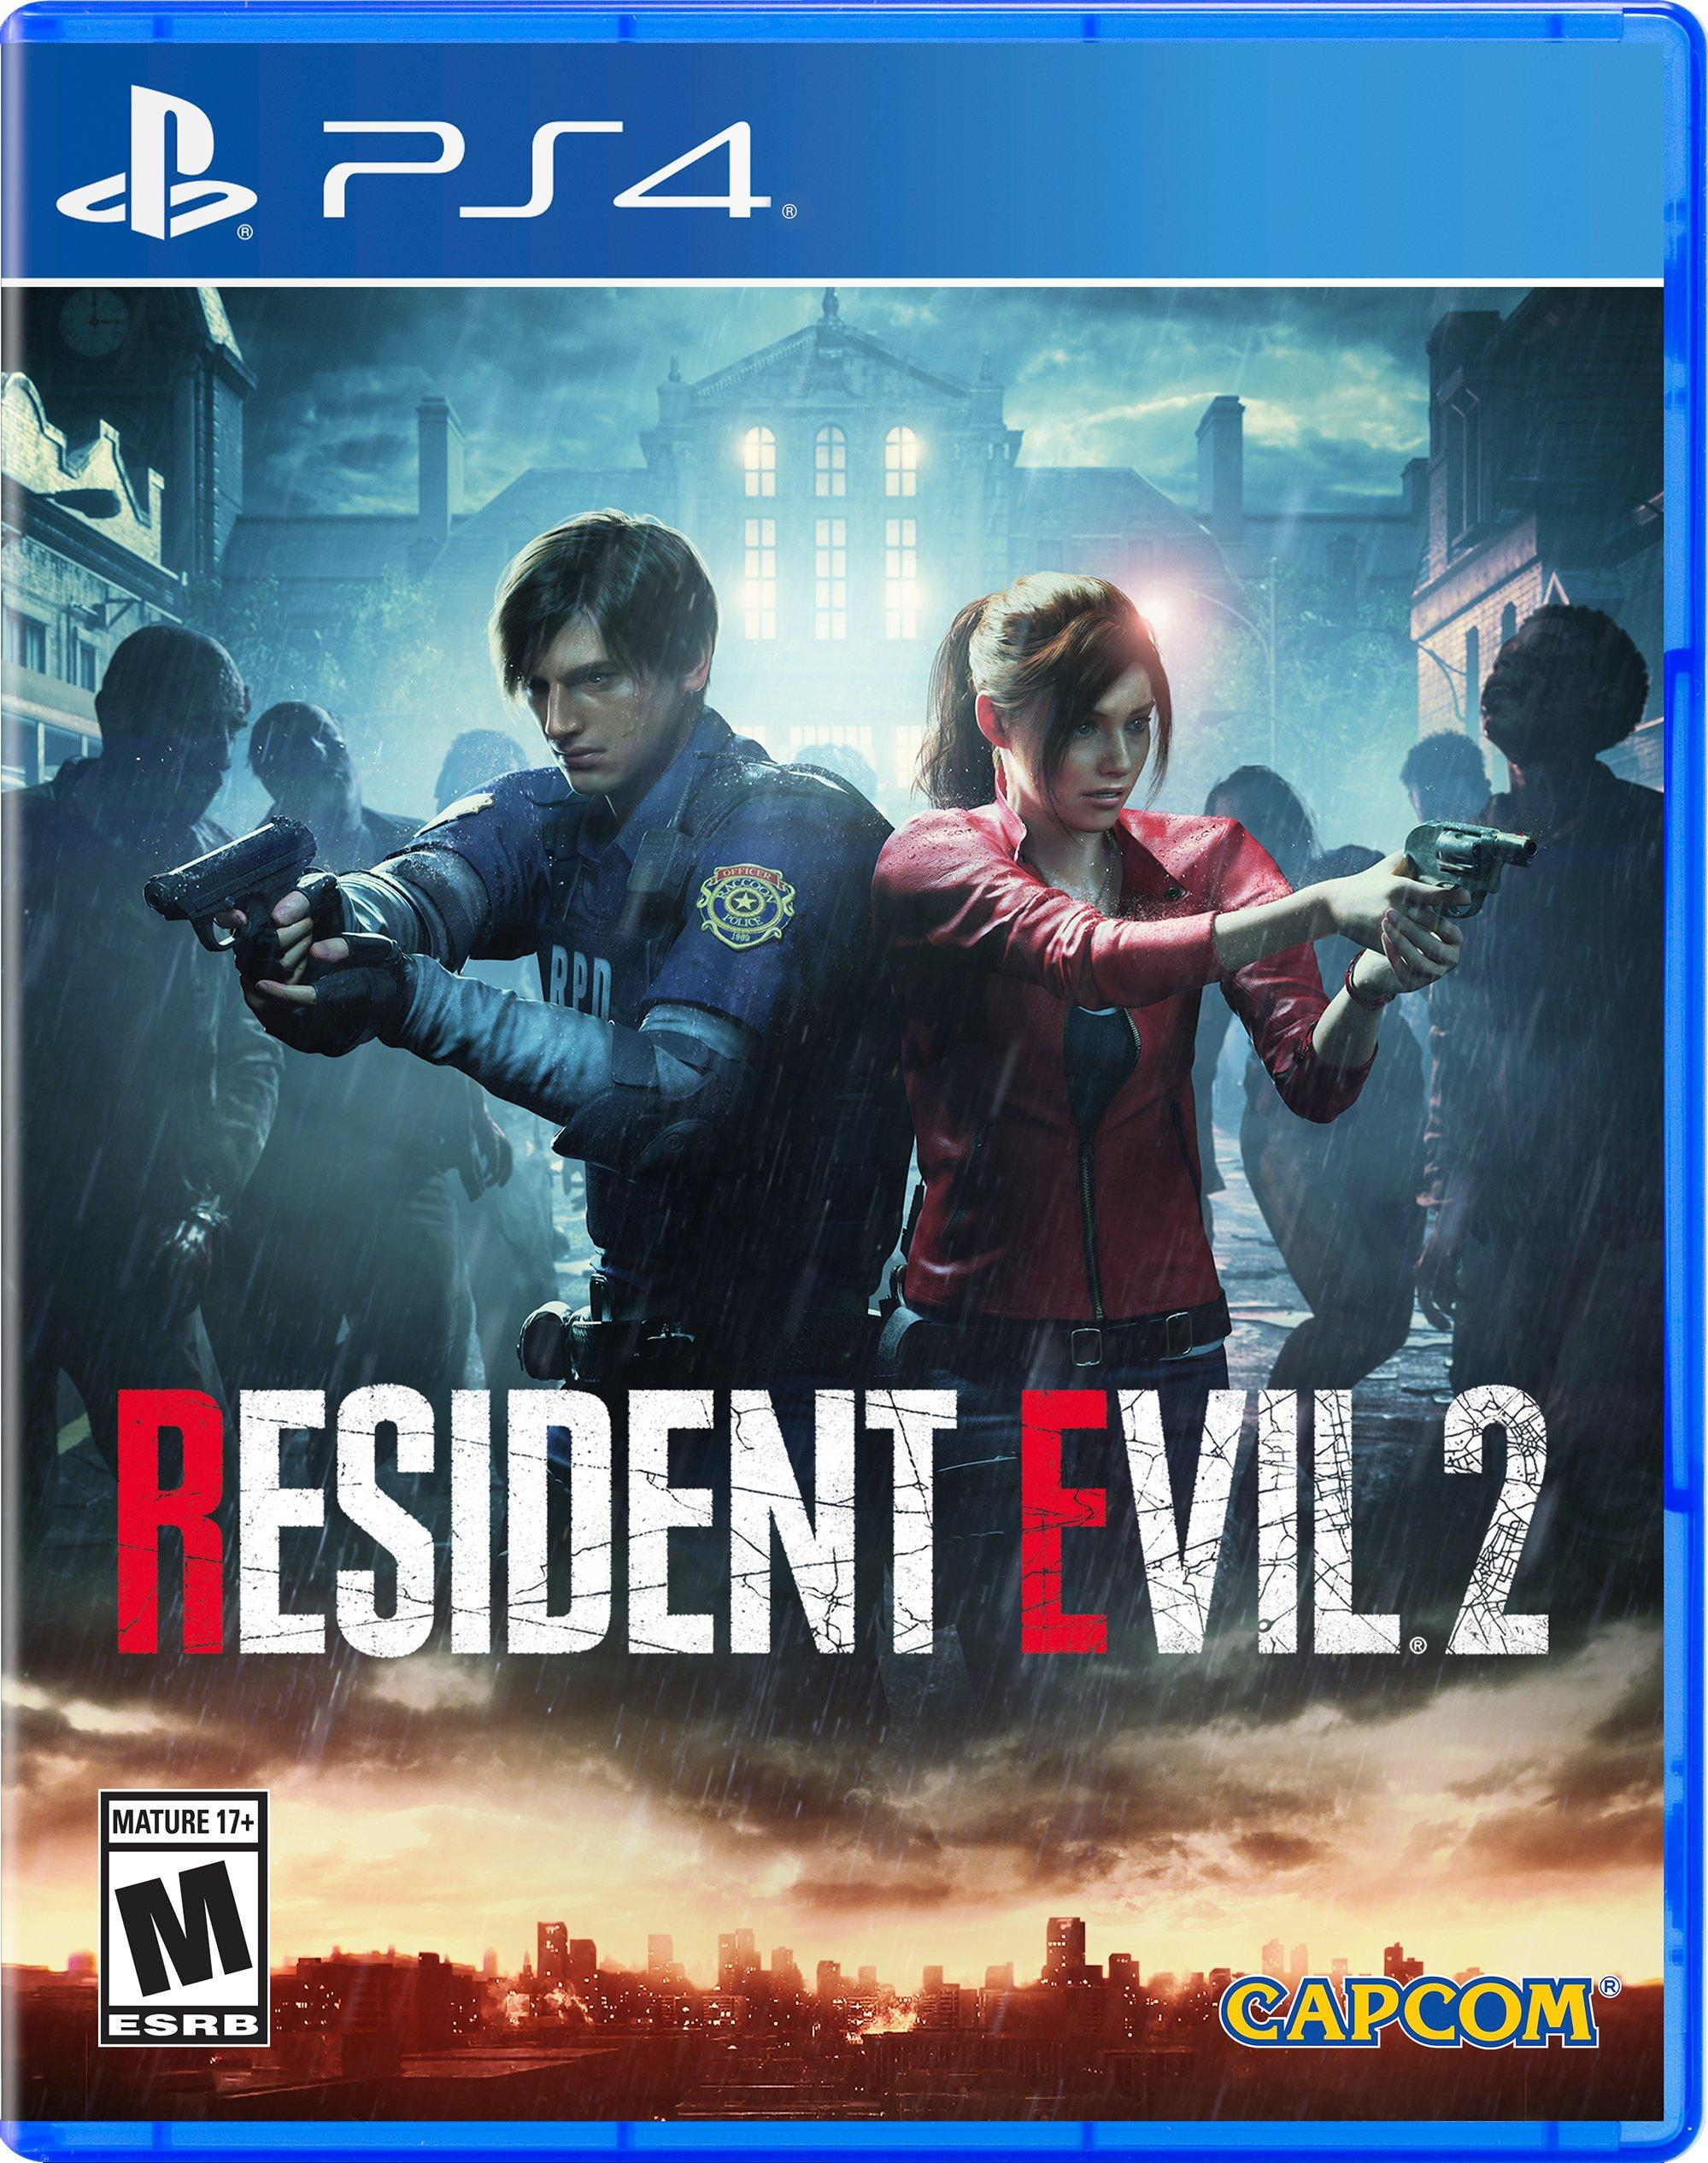 Resident Evil 2 Playstation 4 Gamestop